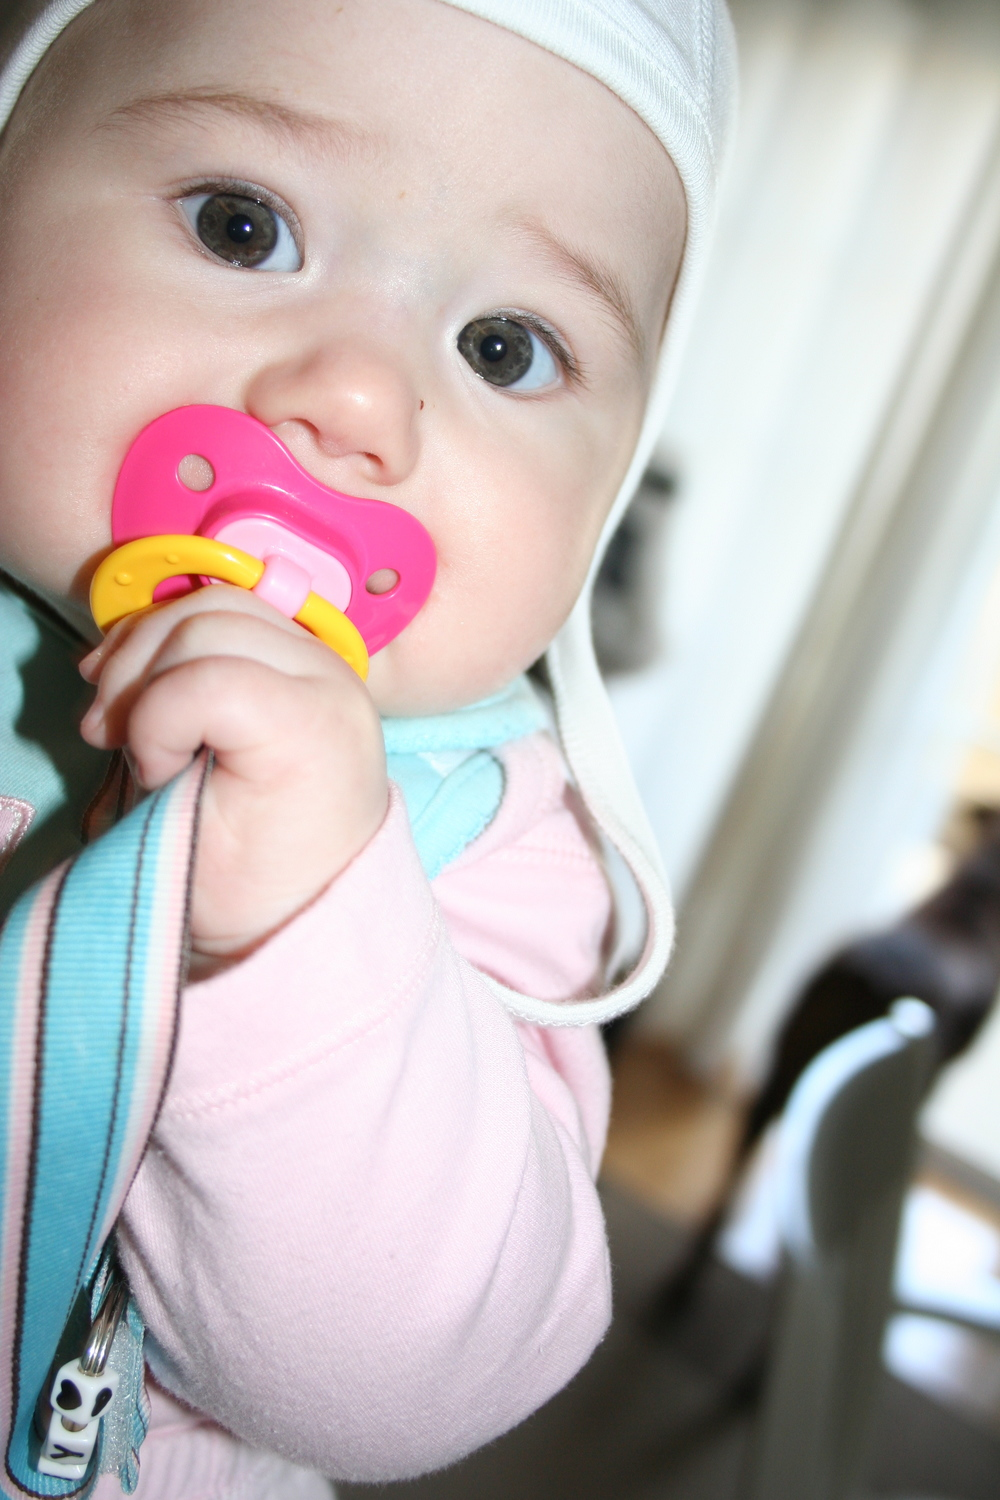 audrey was slightly addicted to her pacifier.